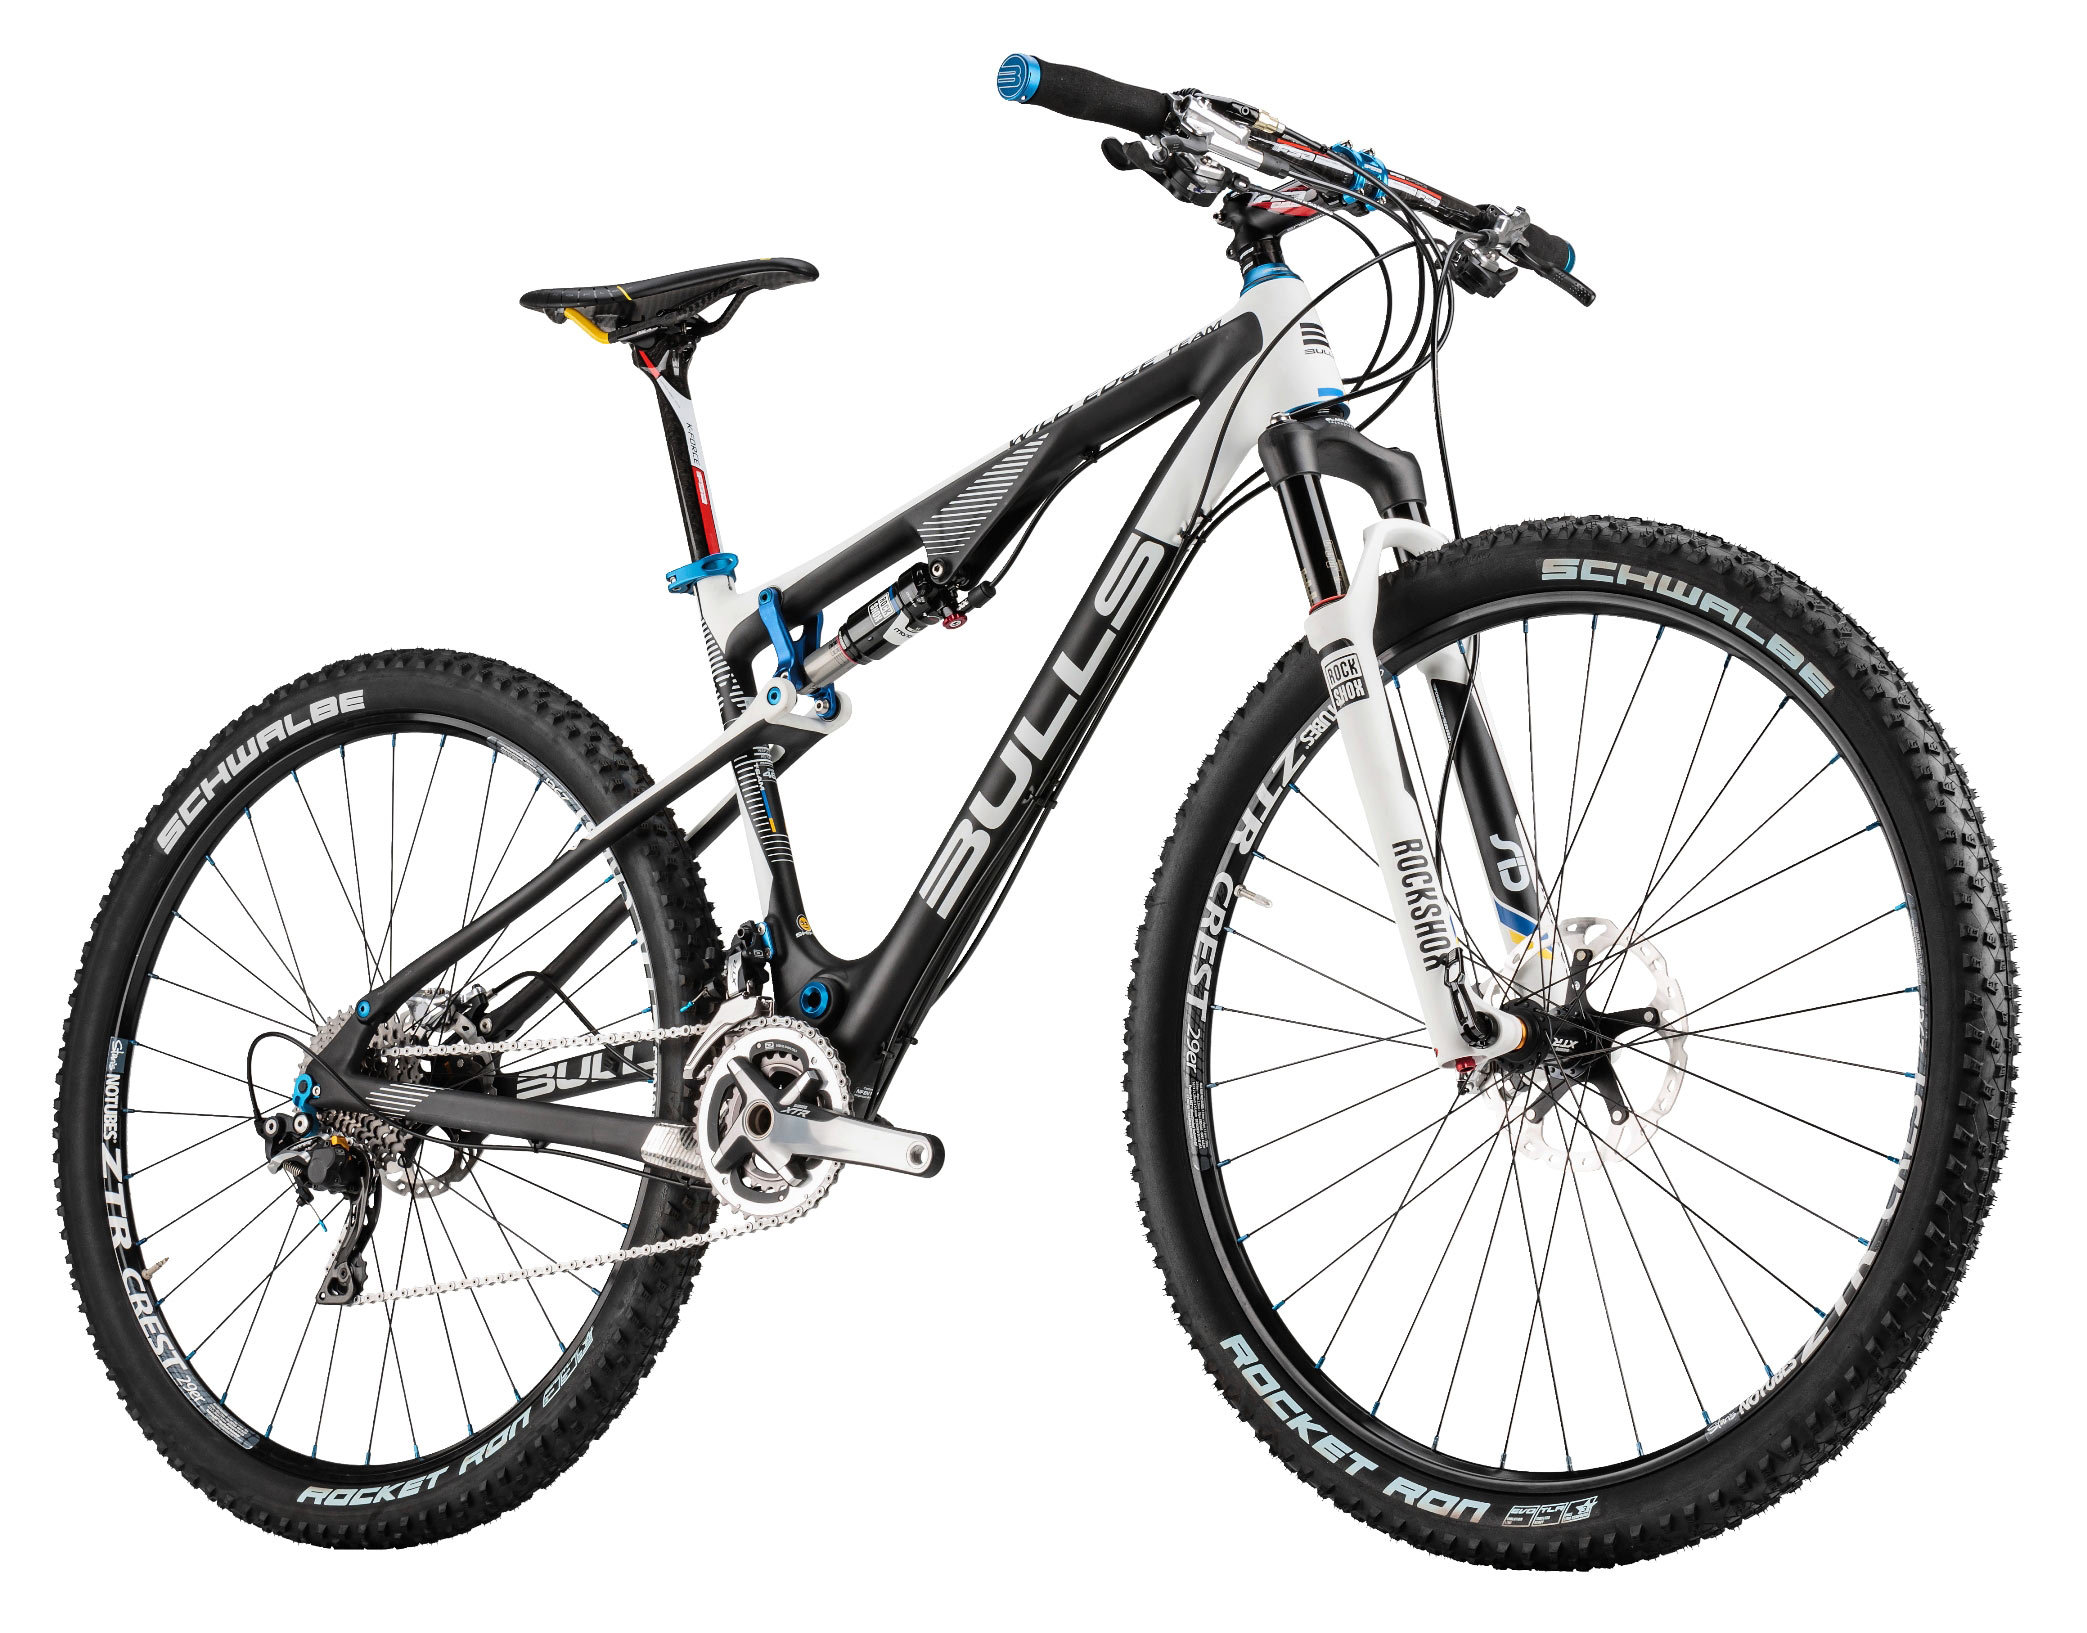 mountainbike bulls wild edge team 29 fully shimano xtr 20g. Black Bedroom Furniture Sets. Home Design Ideas